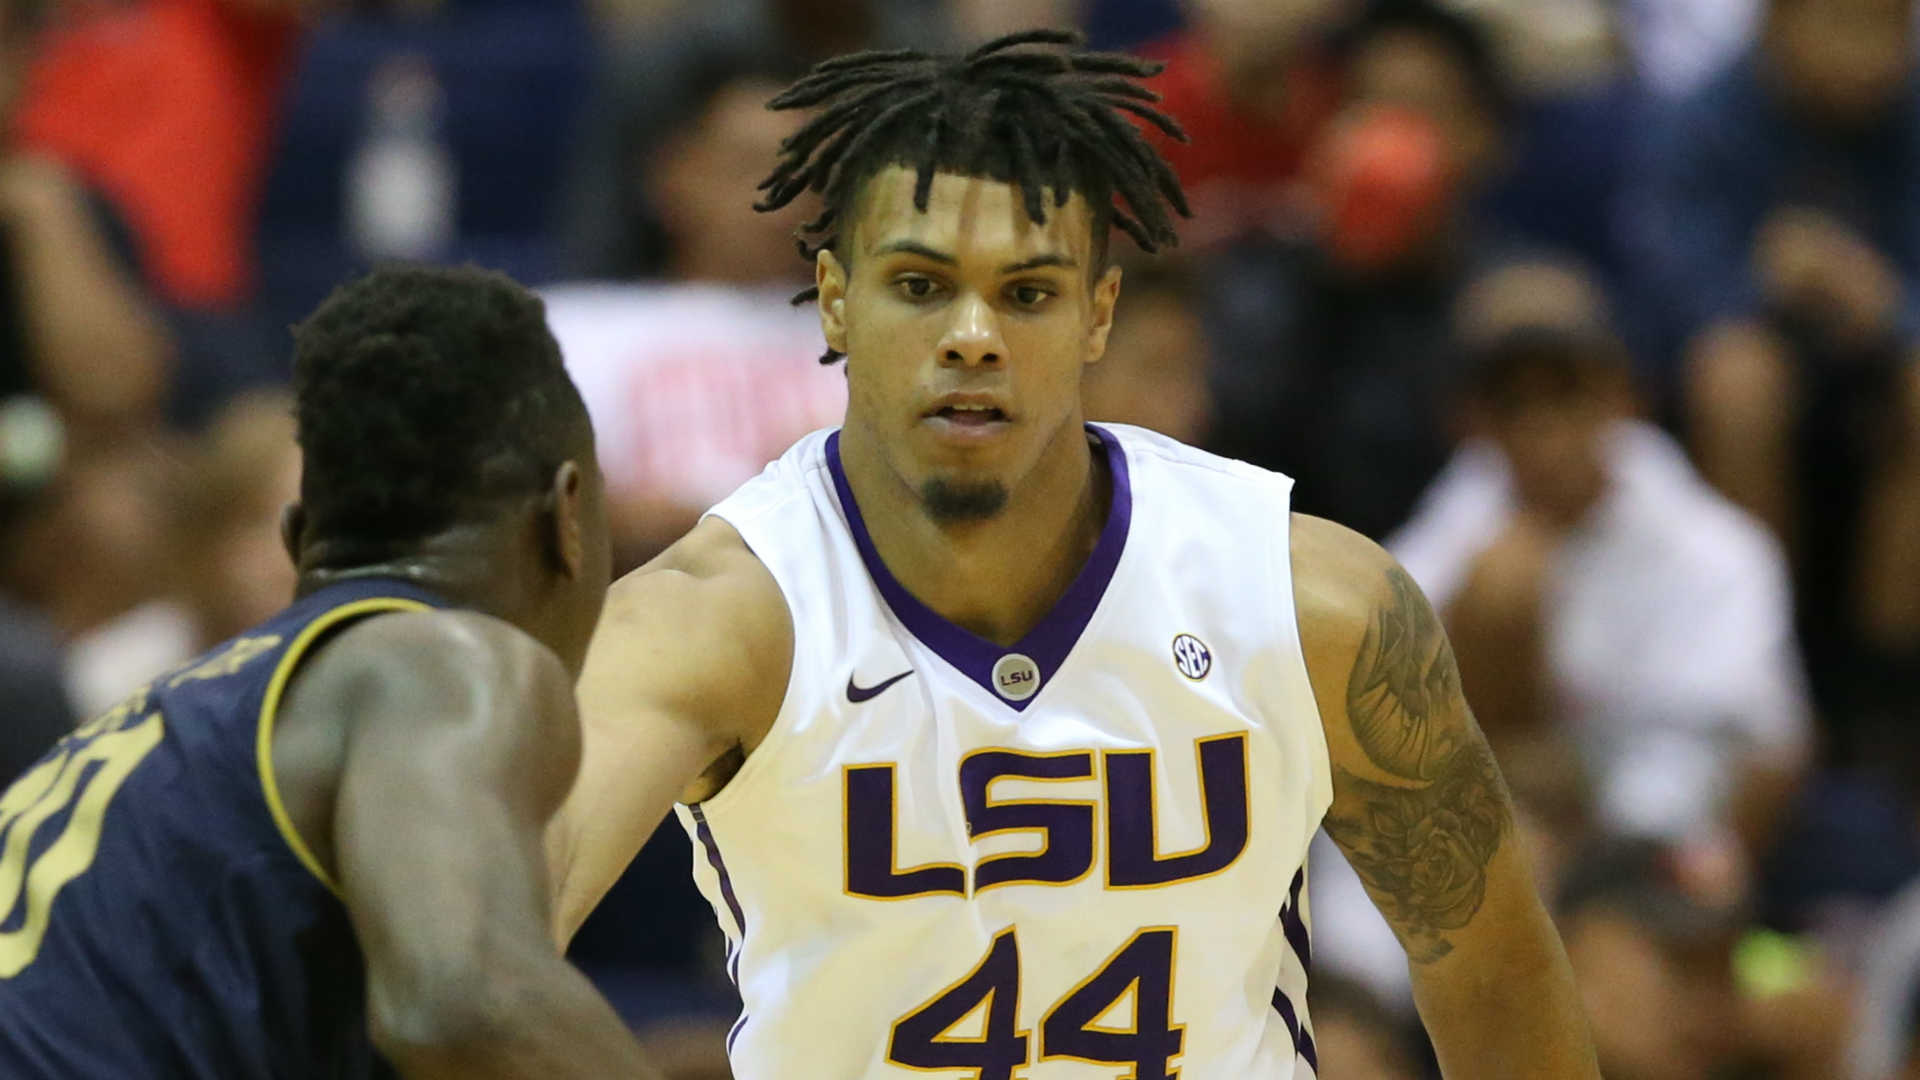 LSU Basketball Player Wayde Sims Killed In Shooting